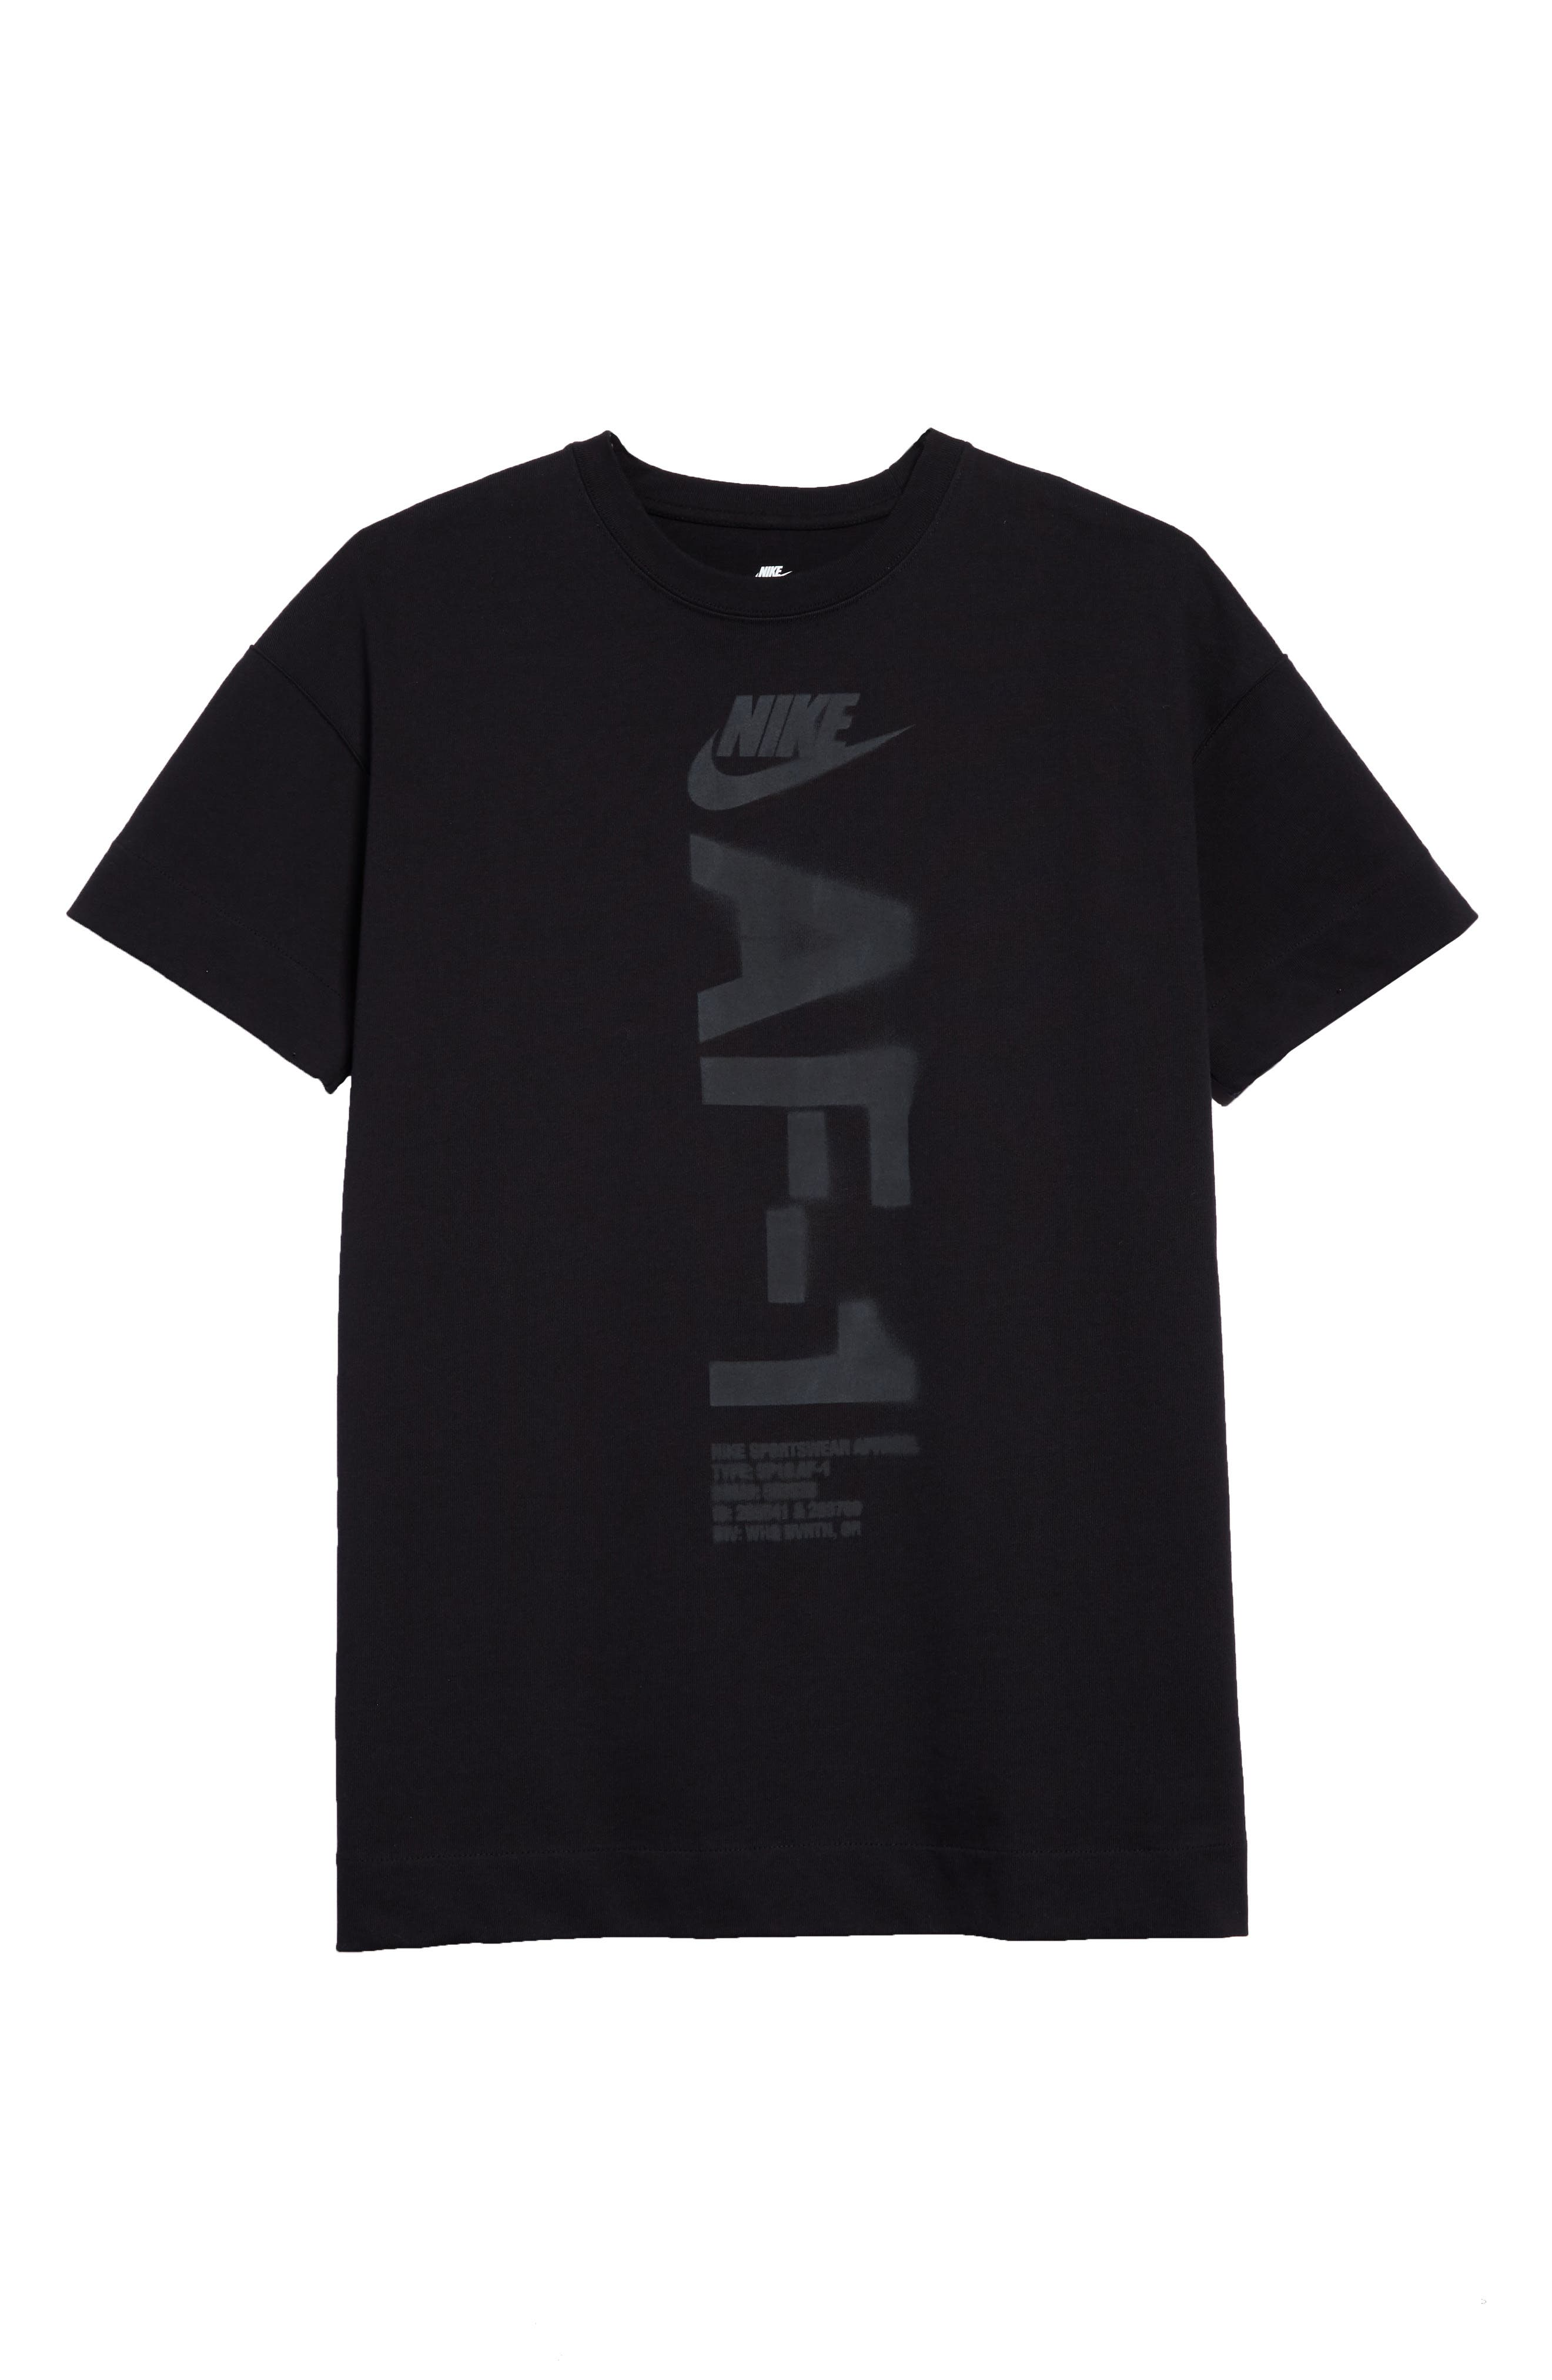 NSW Heavyweight AF-1 T-Shirt,                             Alternate thumbnail 6, color,                             010